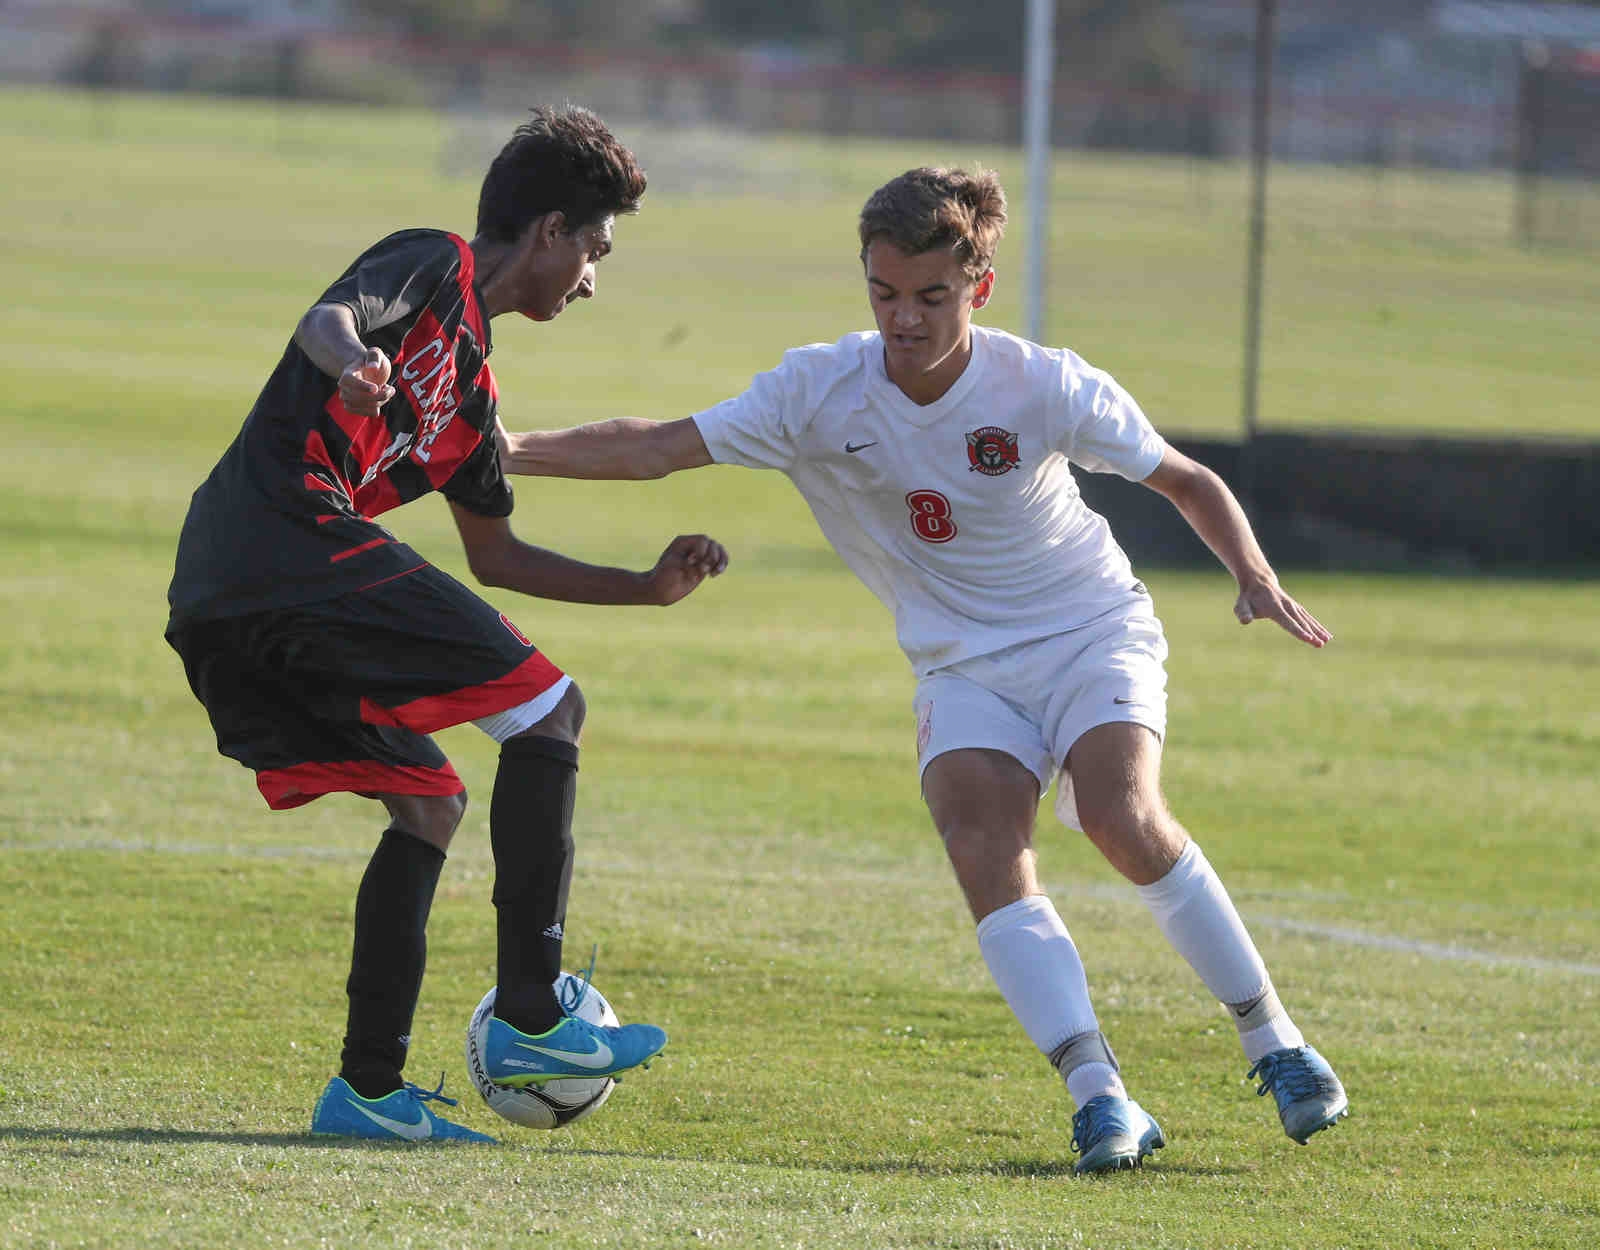 Clarence's Taha Ahmed dribbles the ball past Lancaster's Pat Morin.